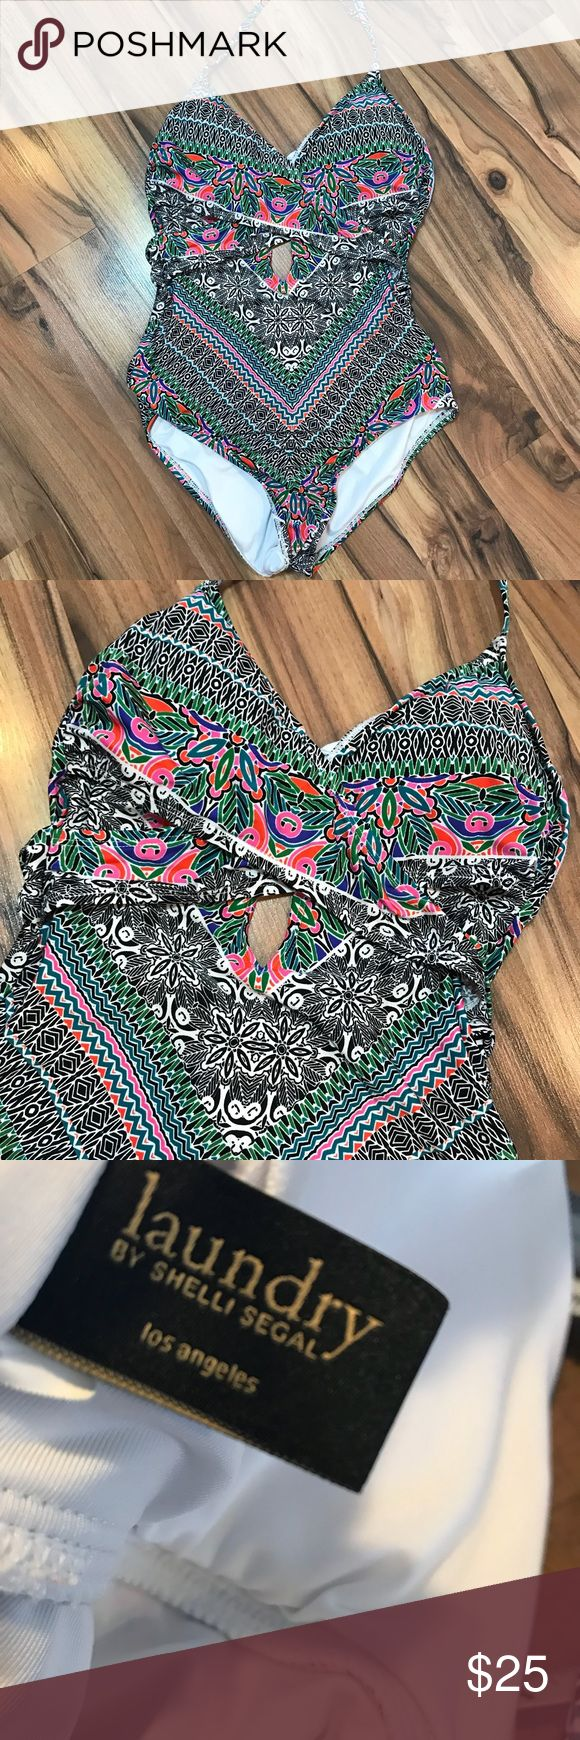 Laundry shelli segal one piece swimsuit s Small Padded cups. Halter style. Great condition. Thank you! Laundry By Shelli Segal Swim One Pieces